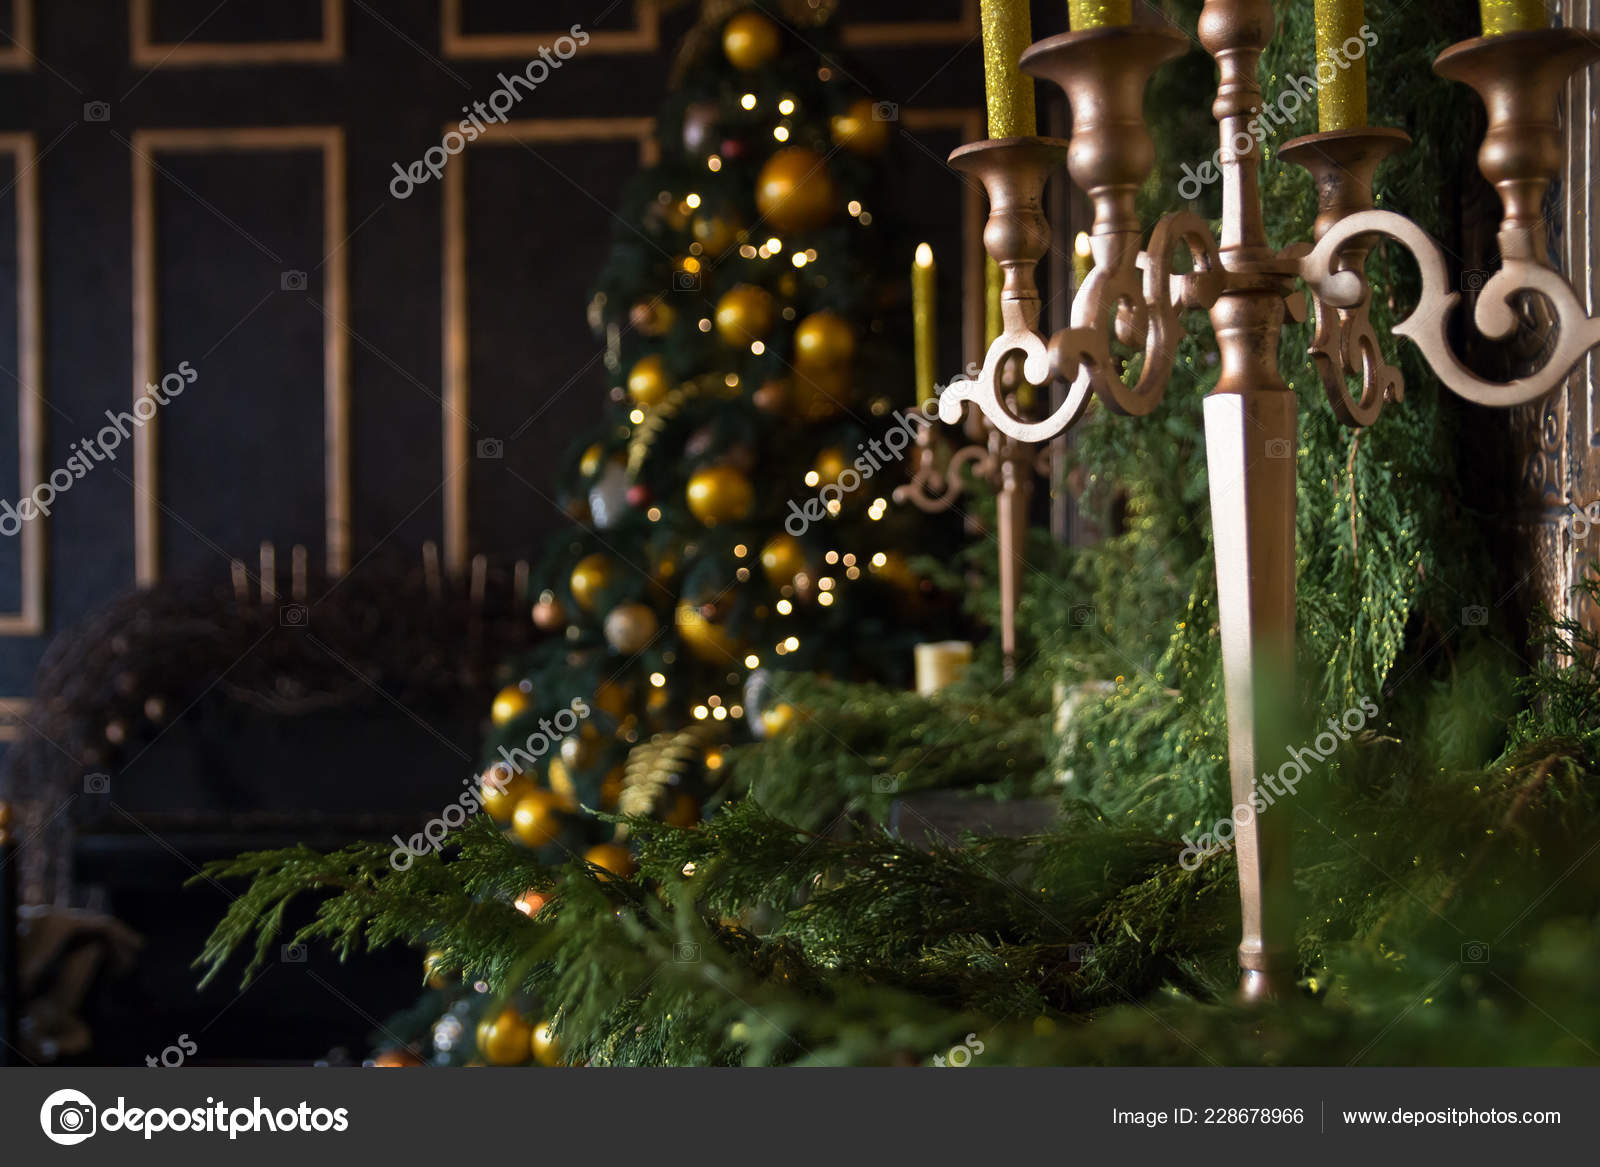 Christmas Tree Yellow Balls Candles Decorated Fireplace Brown Tones Black Stock Photo C Neyao 228678966